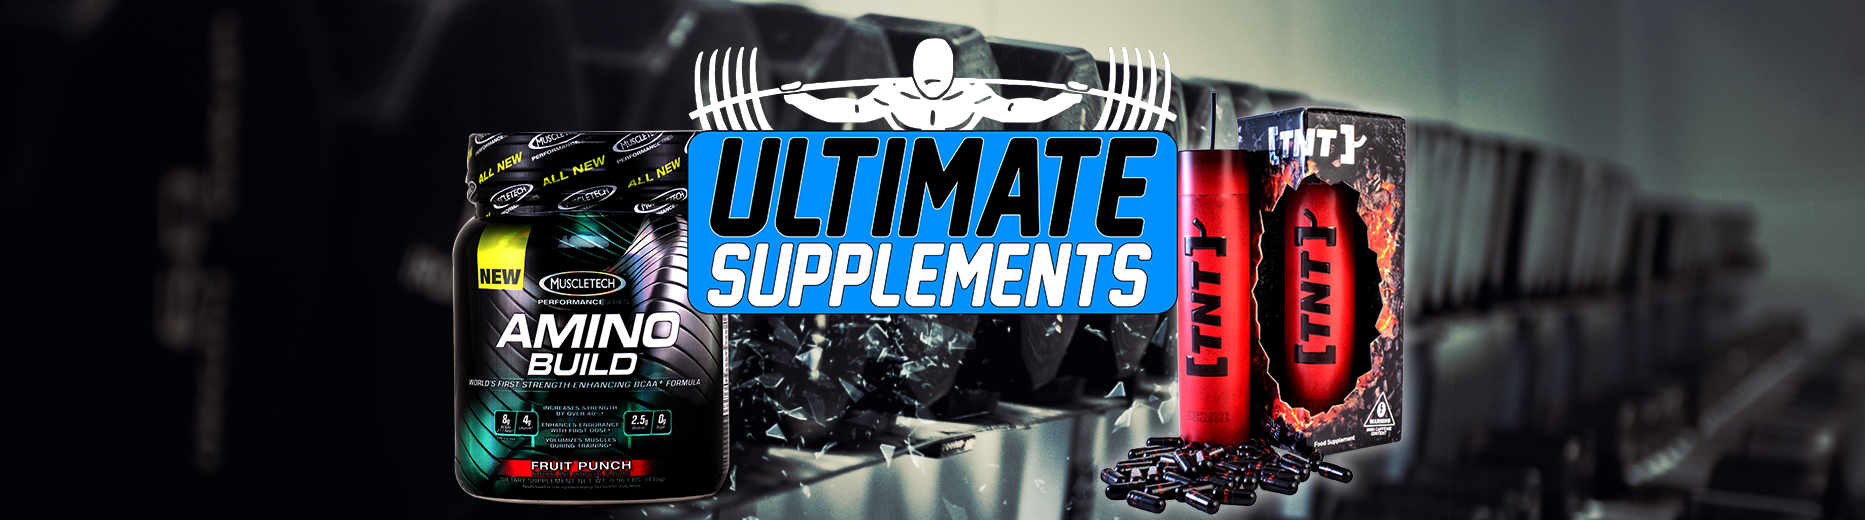 Ultimate Supplements